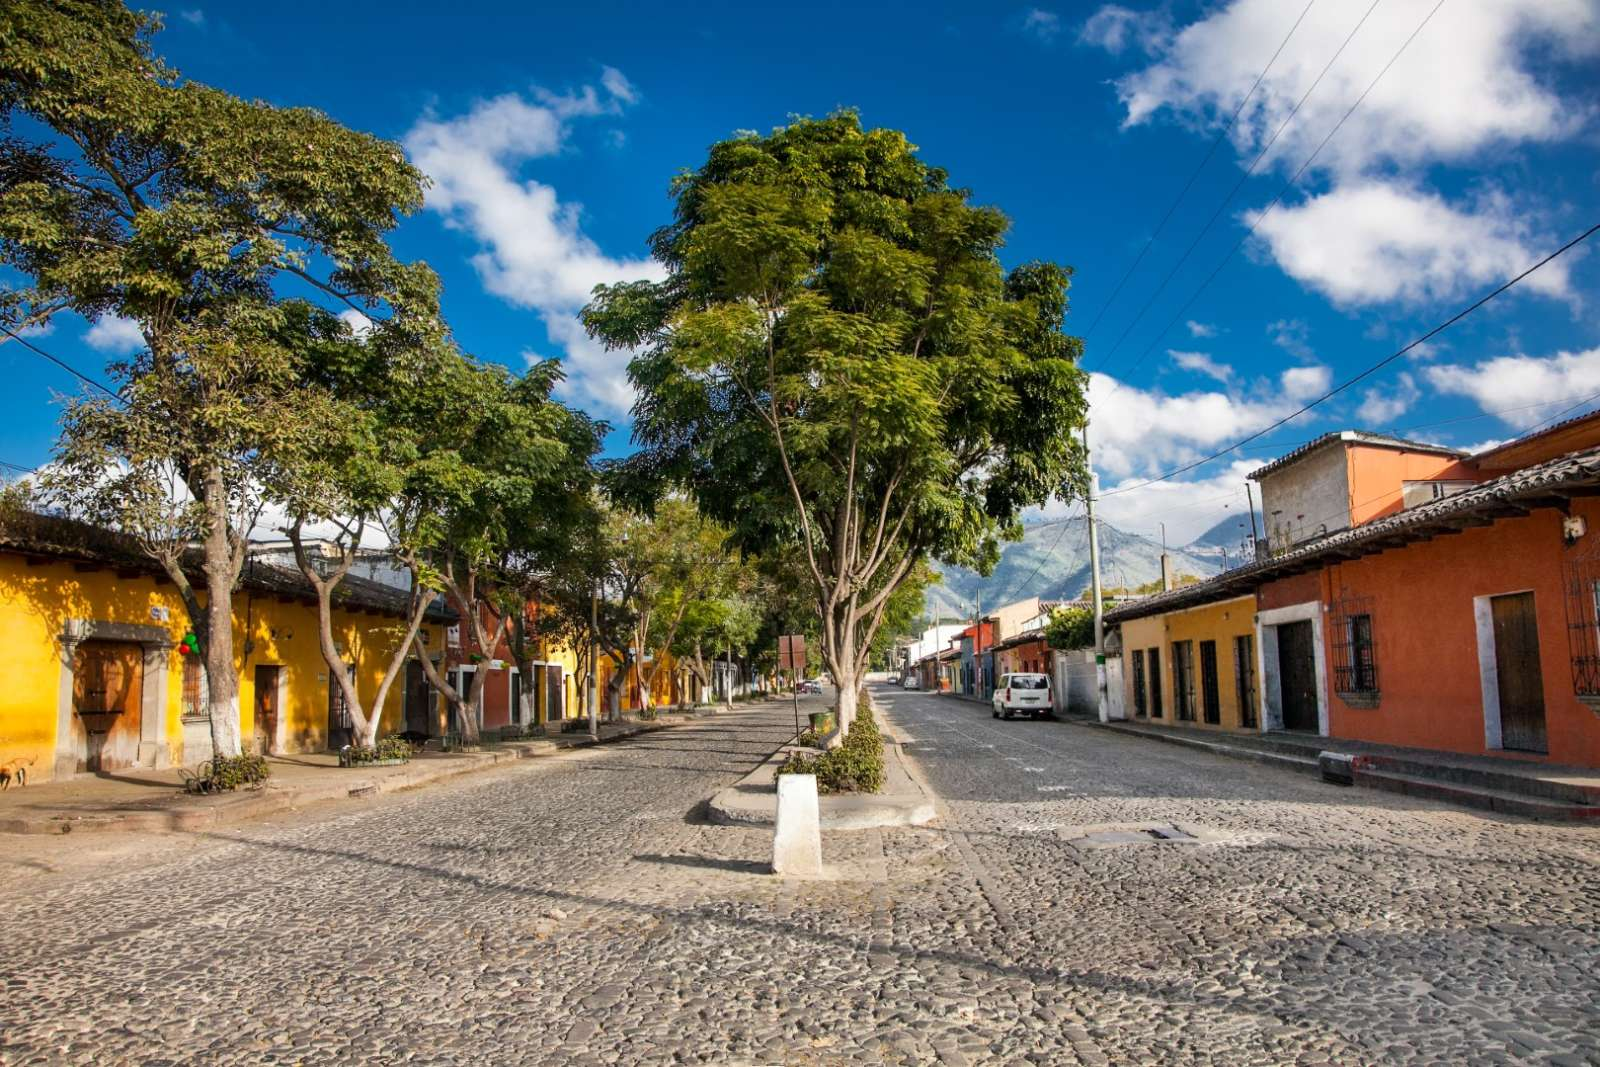 A broad colonial street in Antigua, Guatemala